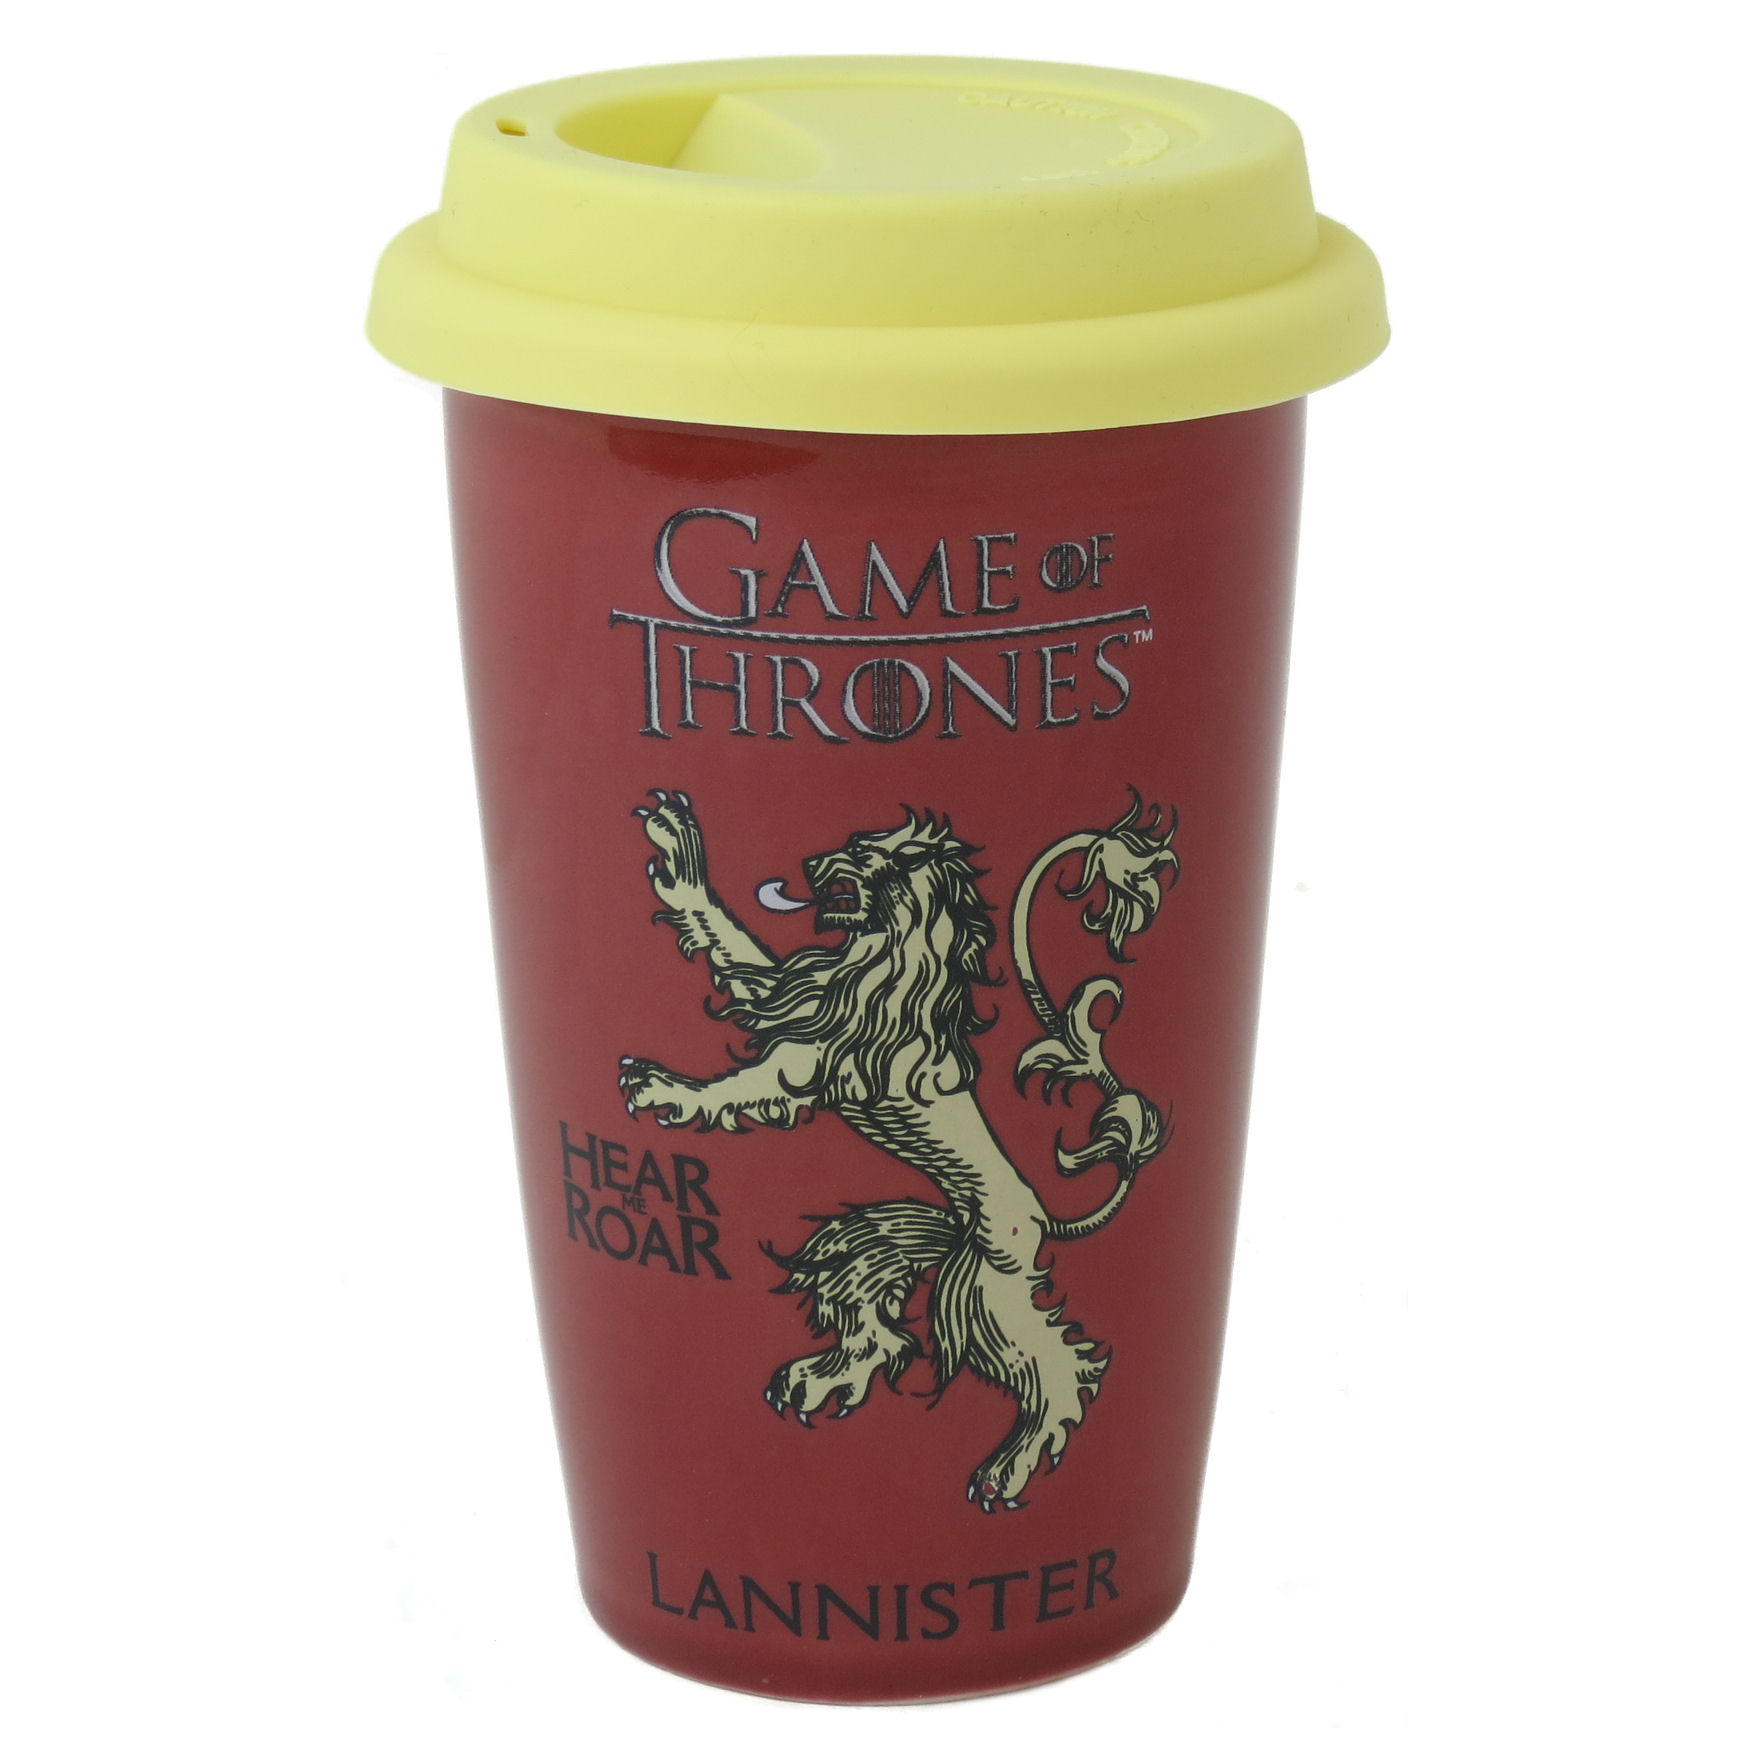 Game of Thrones House Lannister Ceramic Travel Mug